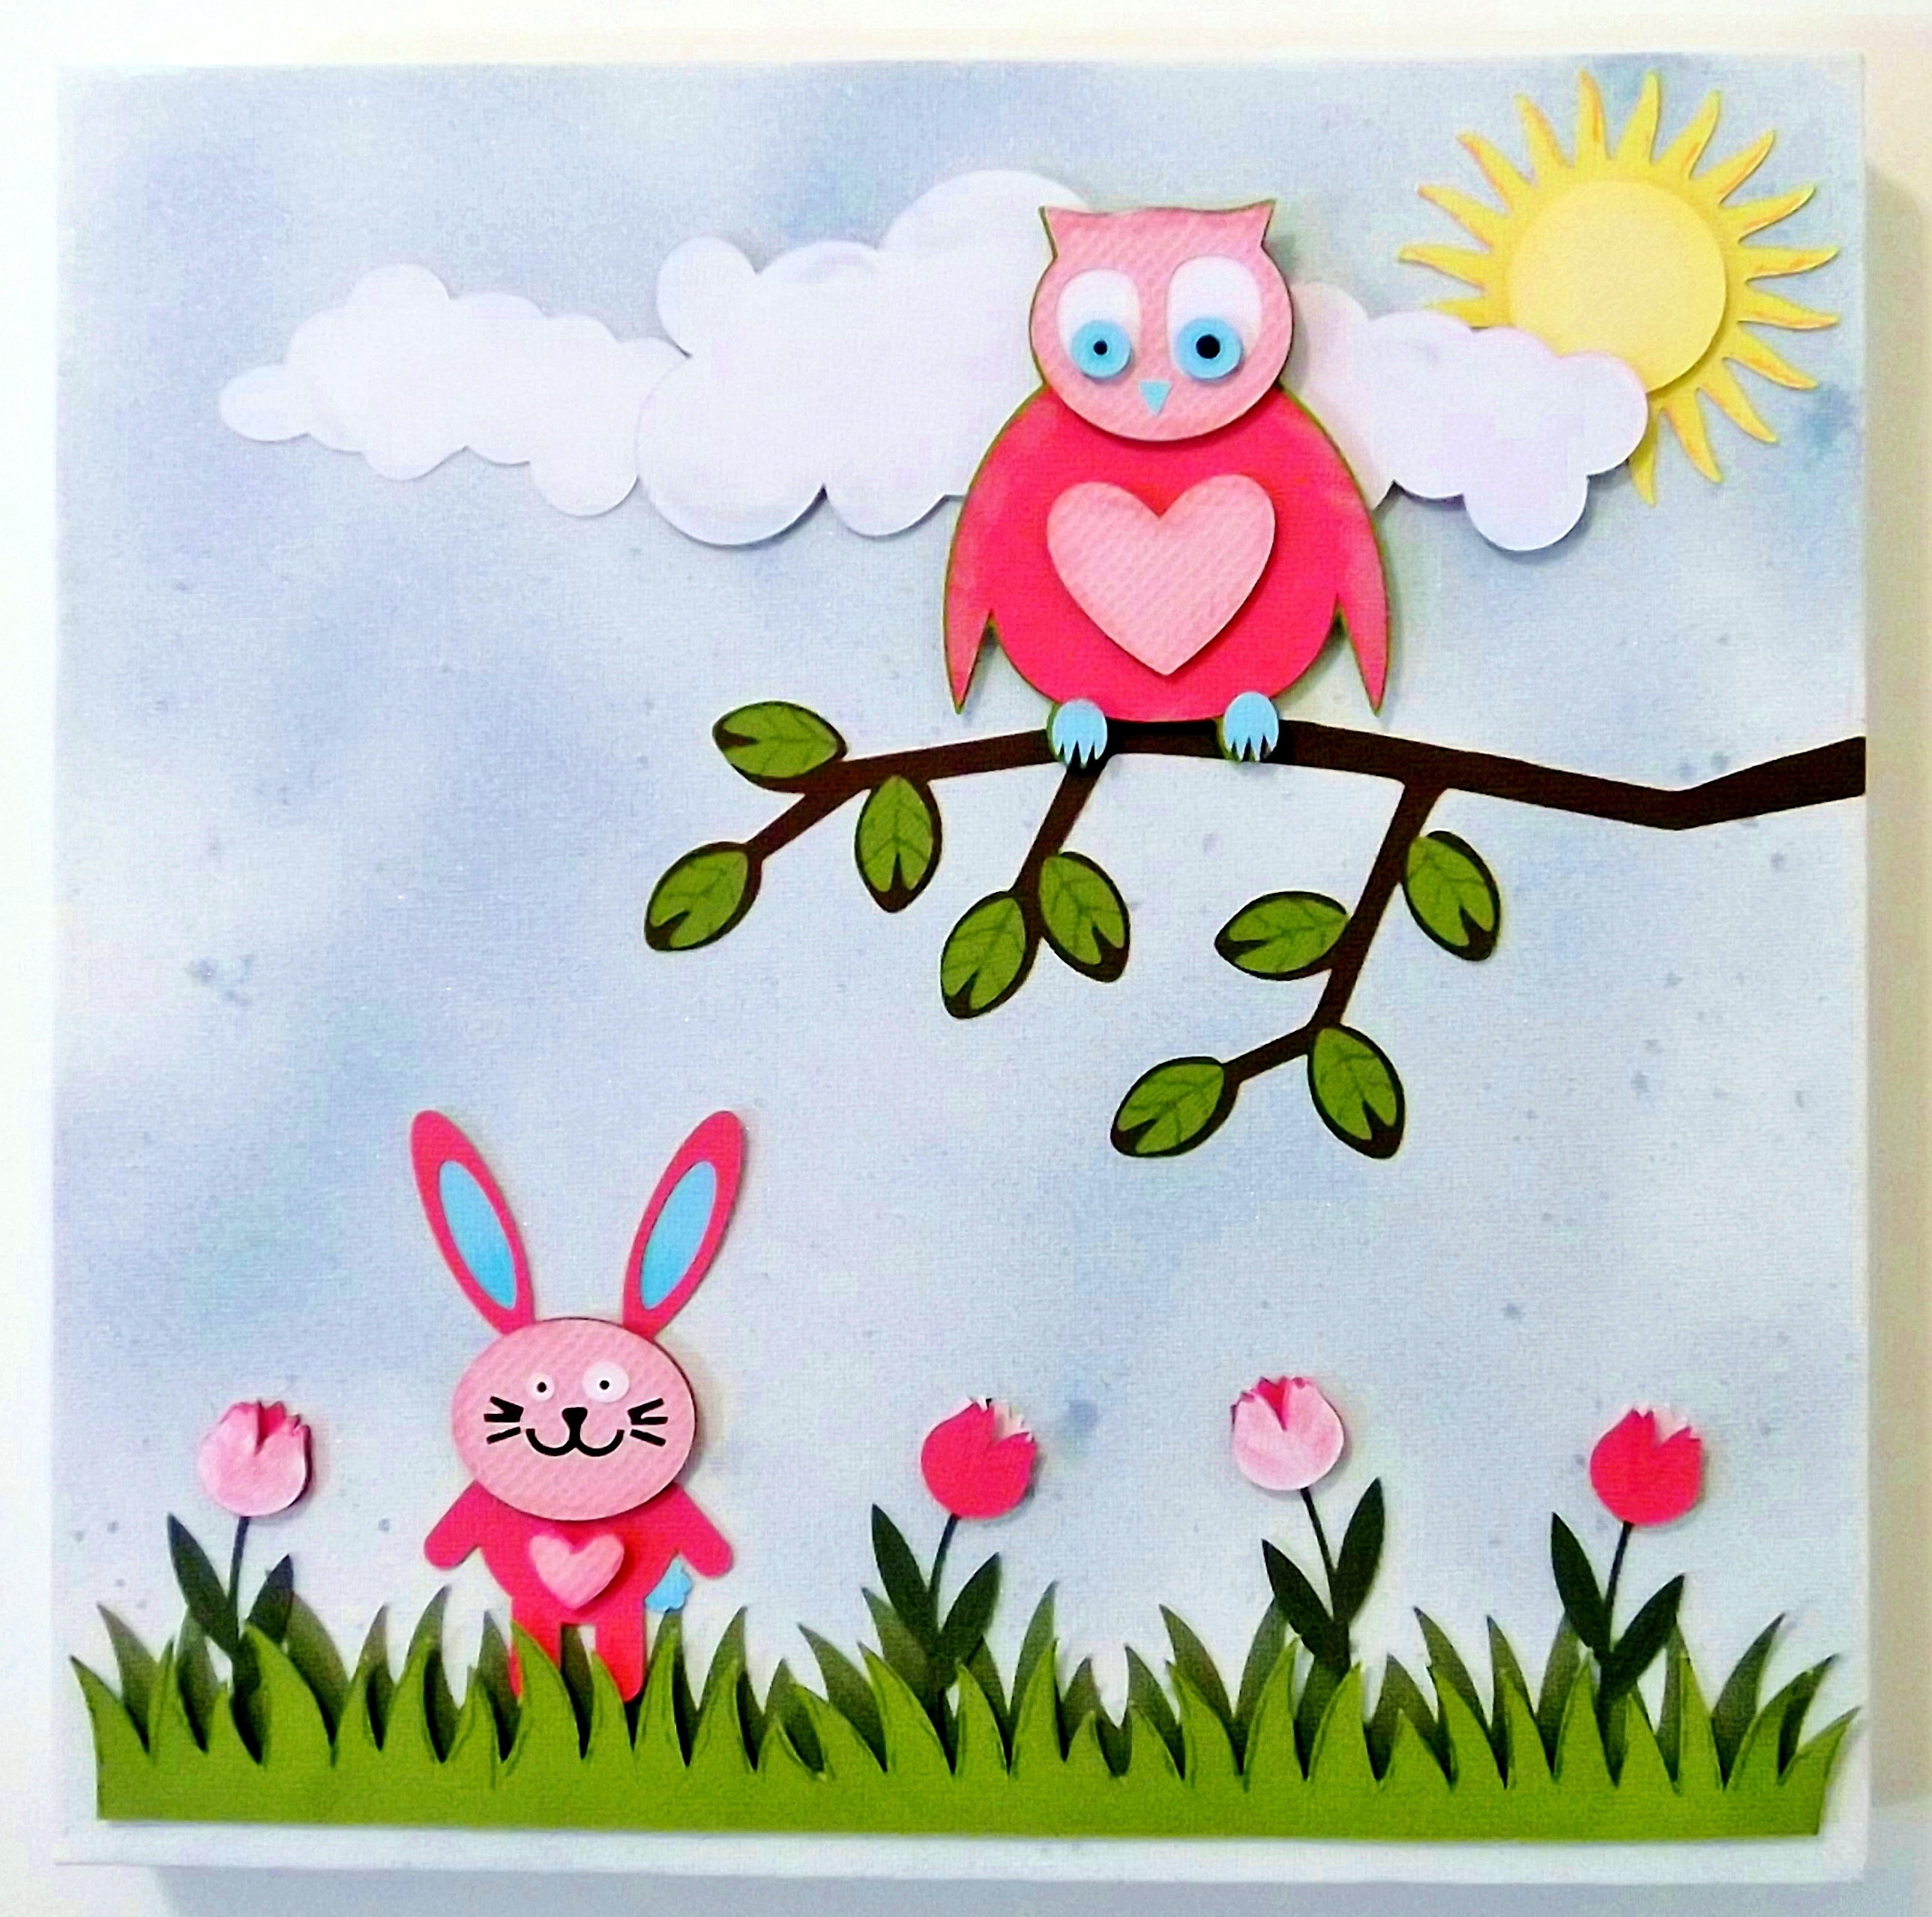 2017 Baby Nursery 3D Wall Art With Regard To Cute Owl & Bunny 3D Paper Wall Art Canvas, 30Cm X 30Cm, For A Baby (View 1 of 15)